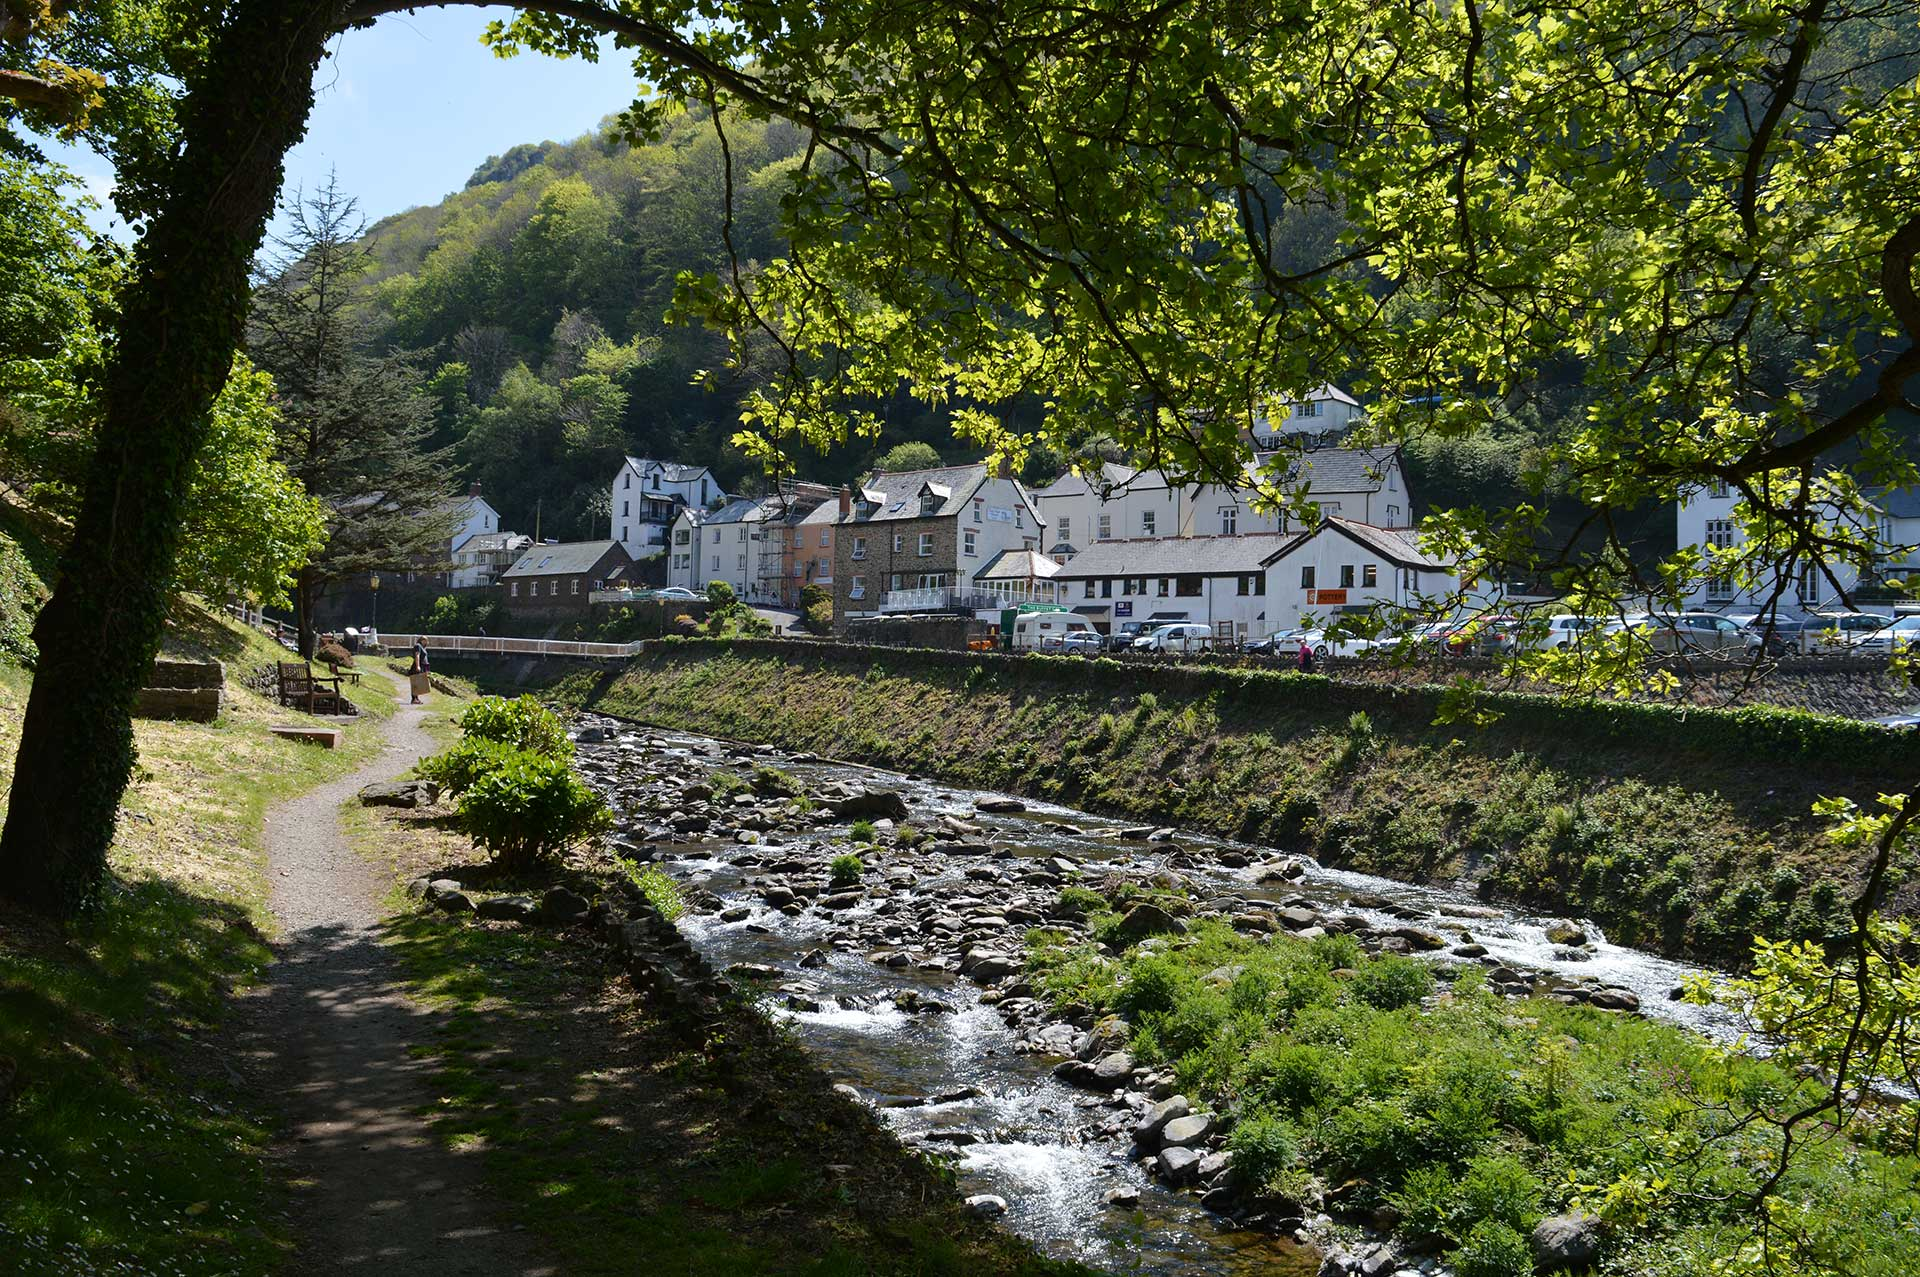 East Lyn House Bed & Breakfast, Lynmouth, Devon